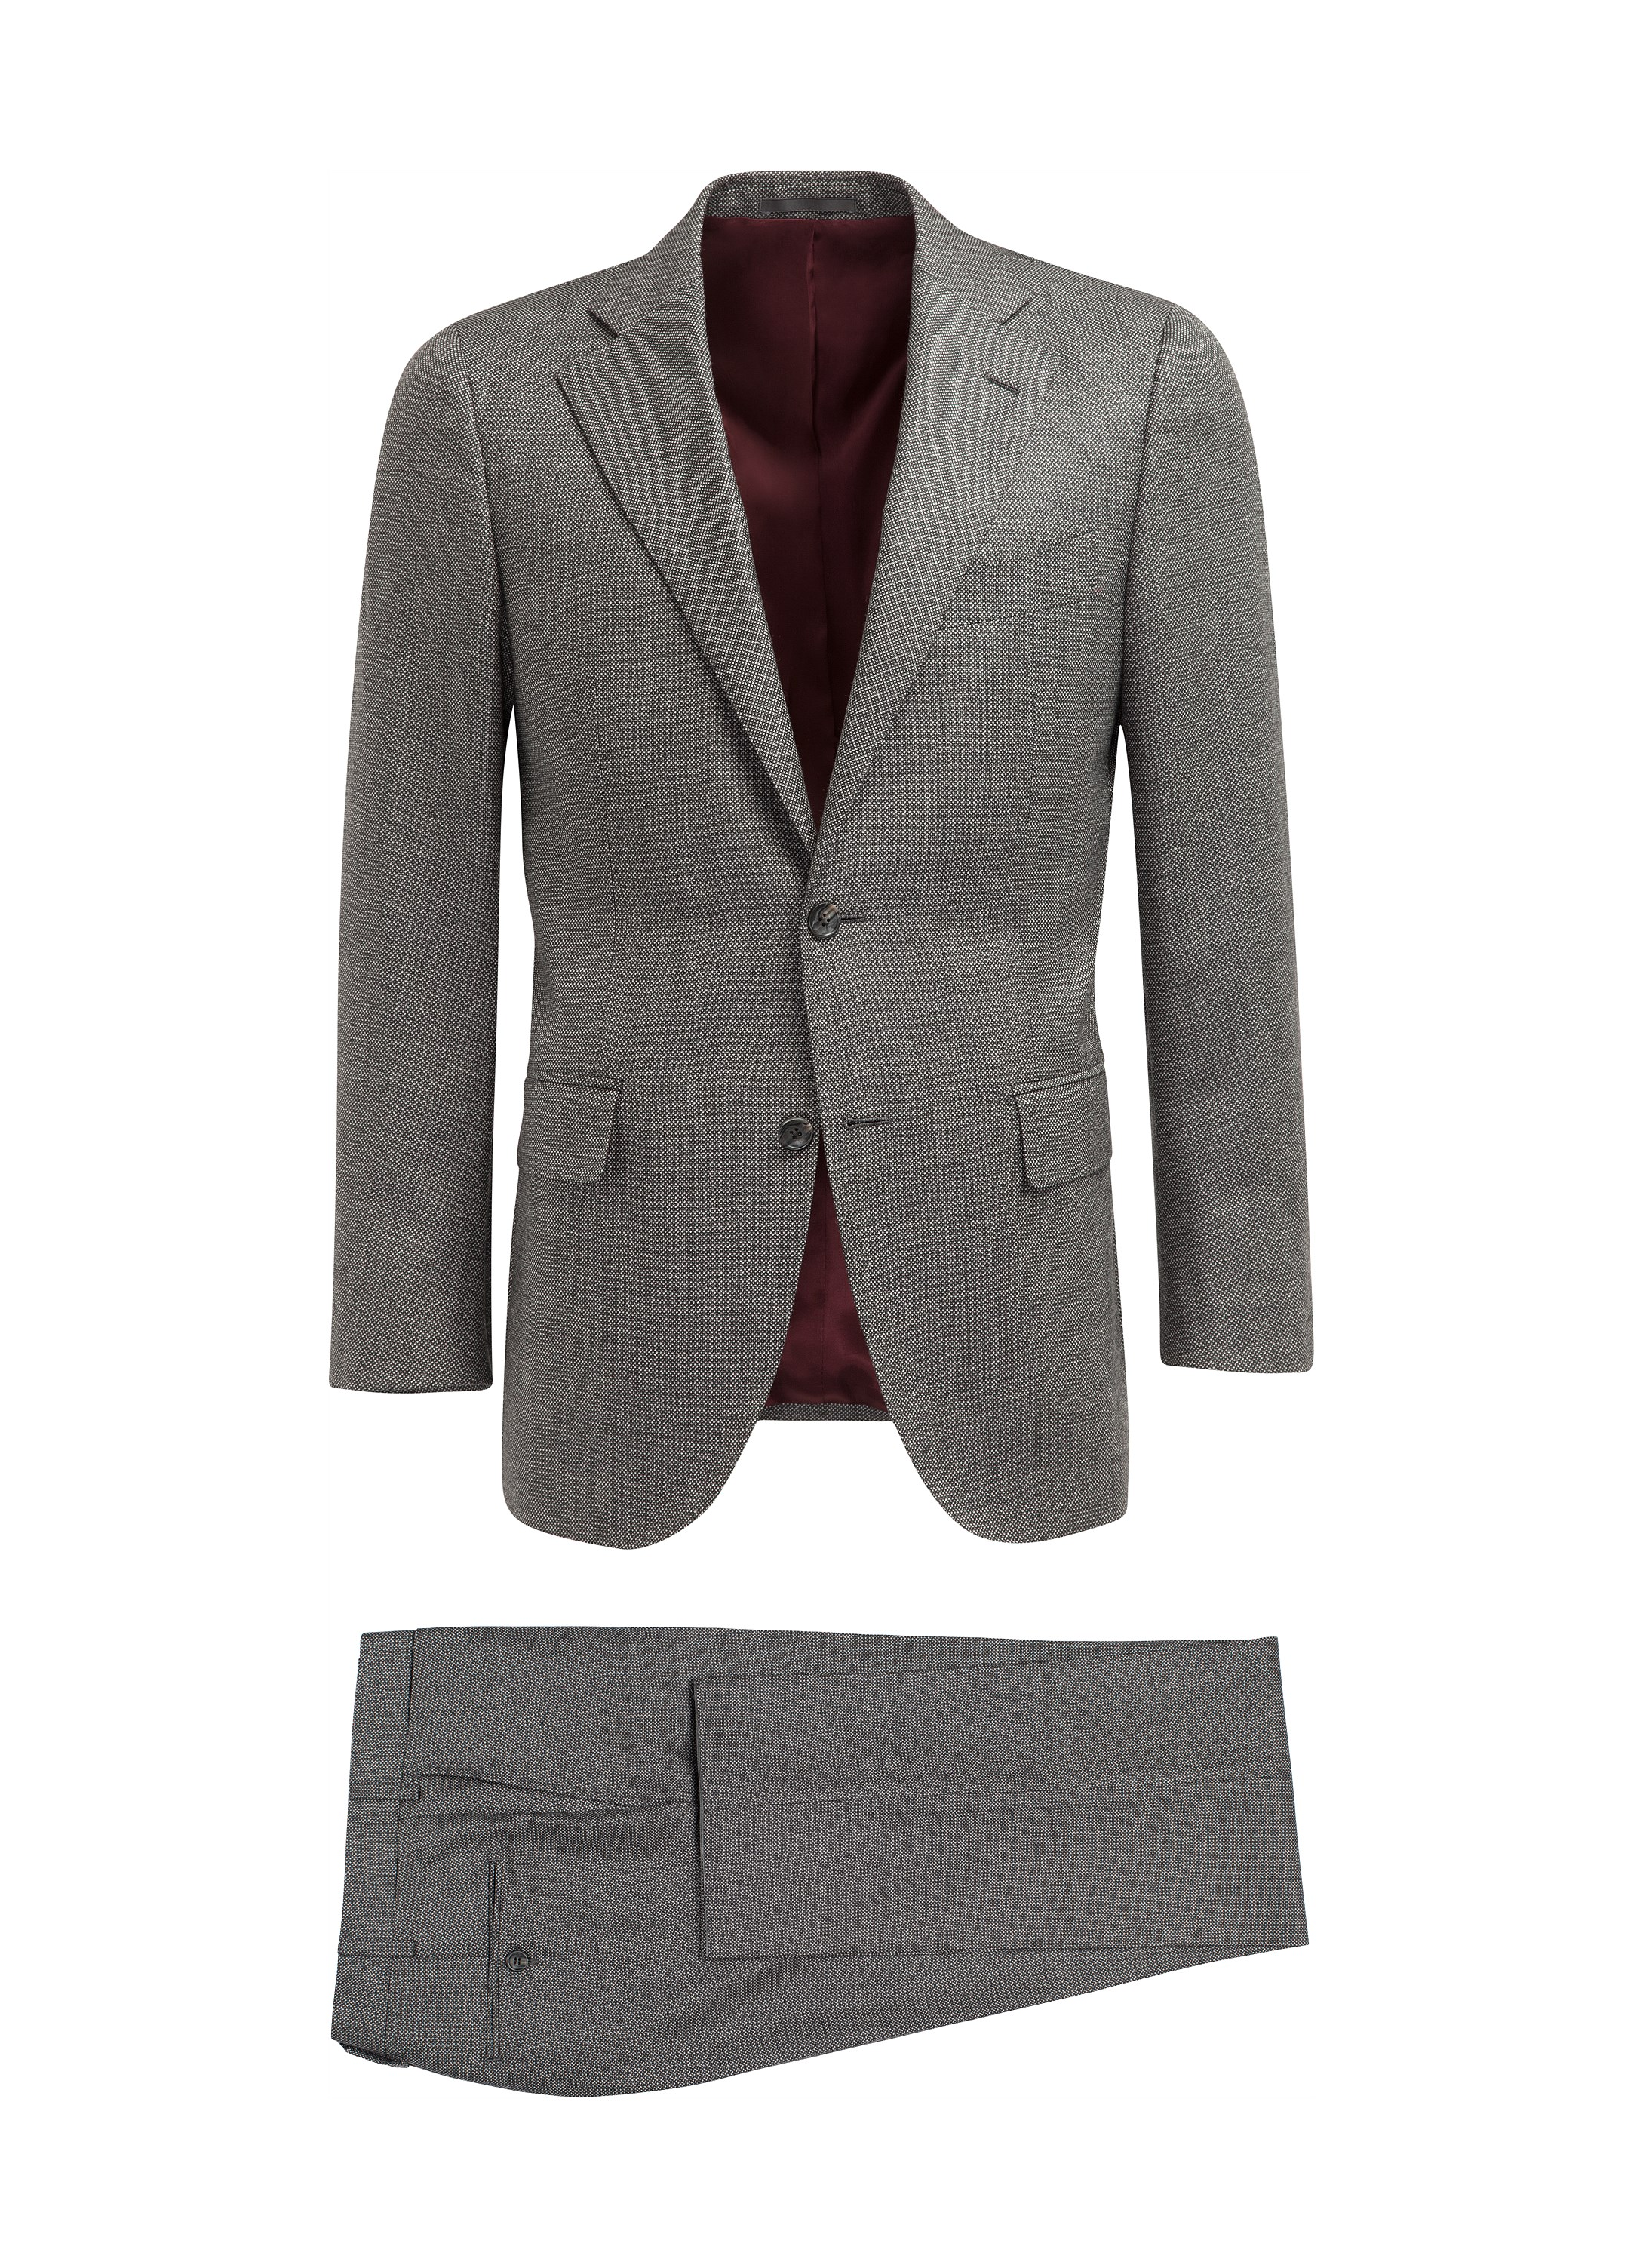 http://statics.suitsupply.com/images/products/Suits/zoom/Suits_Grey_Birds_Eye_Lazio_P4707_Suitsupply_Online_Store_5.jpg